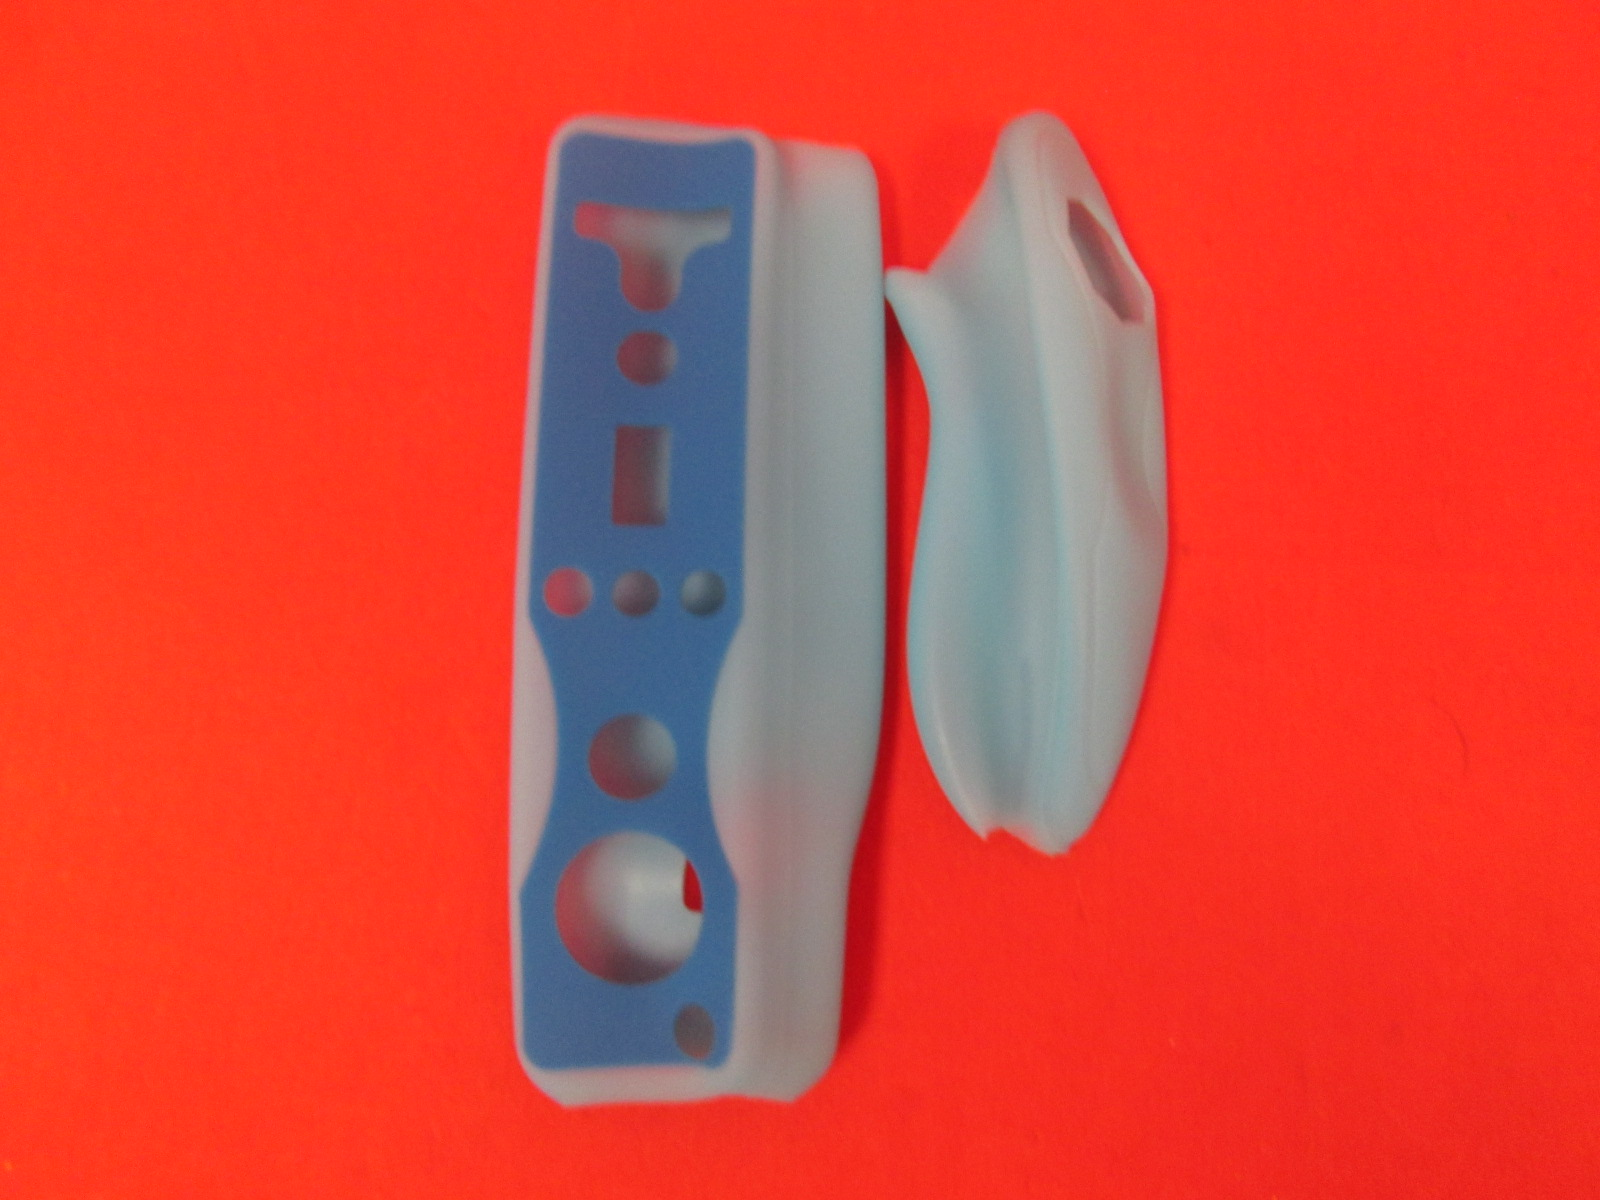 Blue Silicon Case Skin For Nintendo Wiimote And Nunchuk